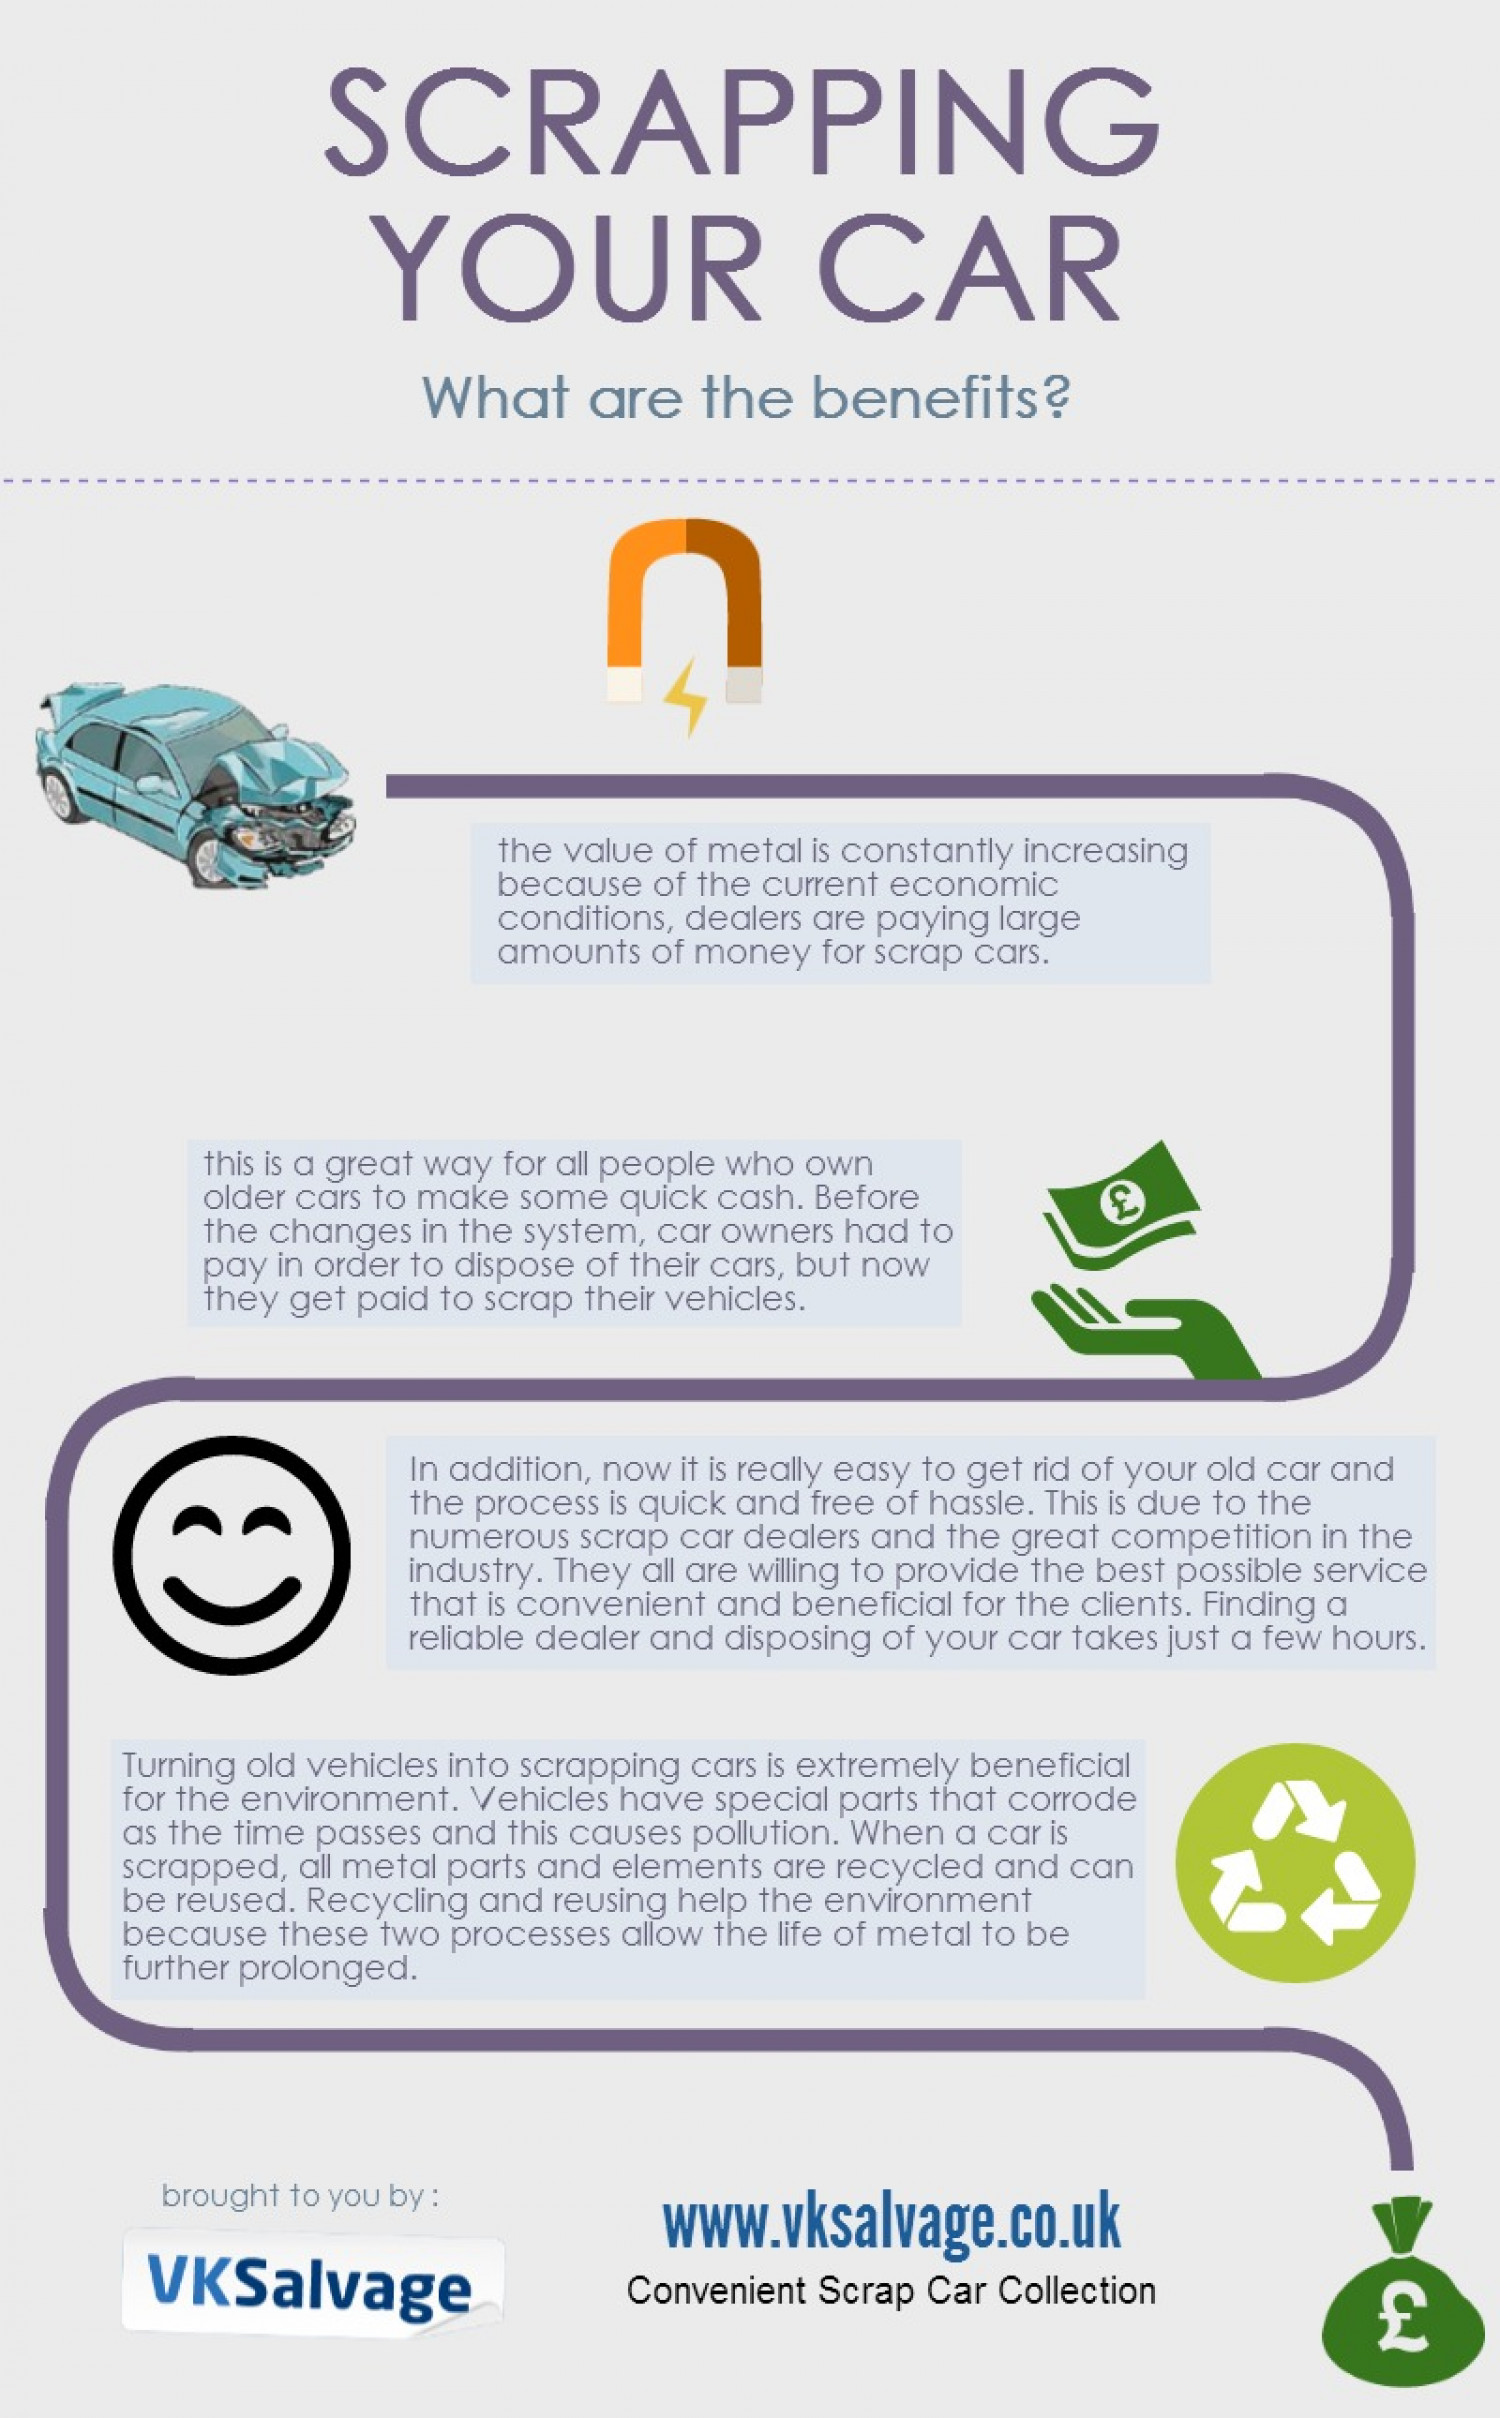 The Benefits of Scrapping your Car Infographic